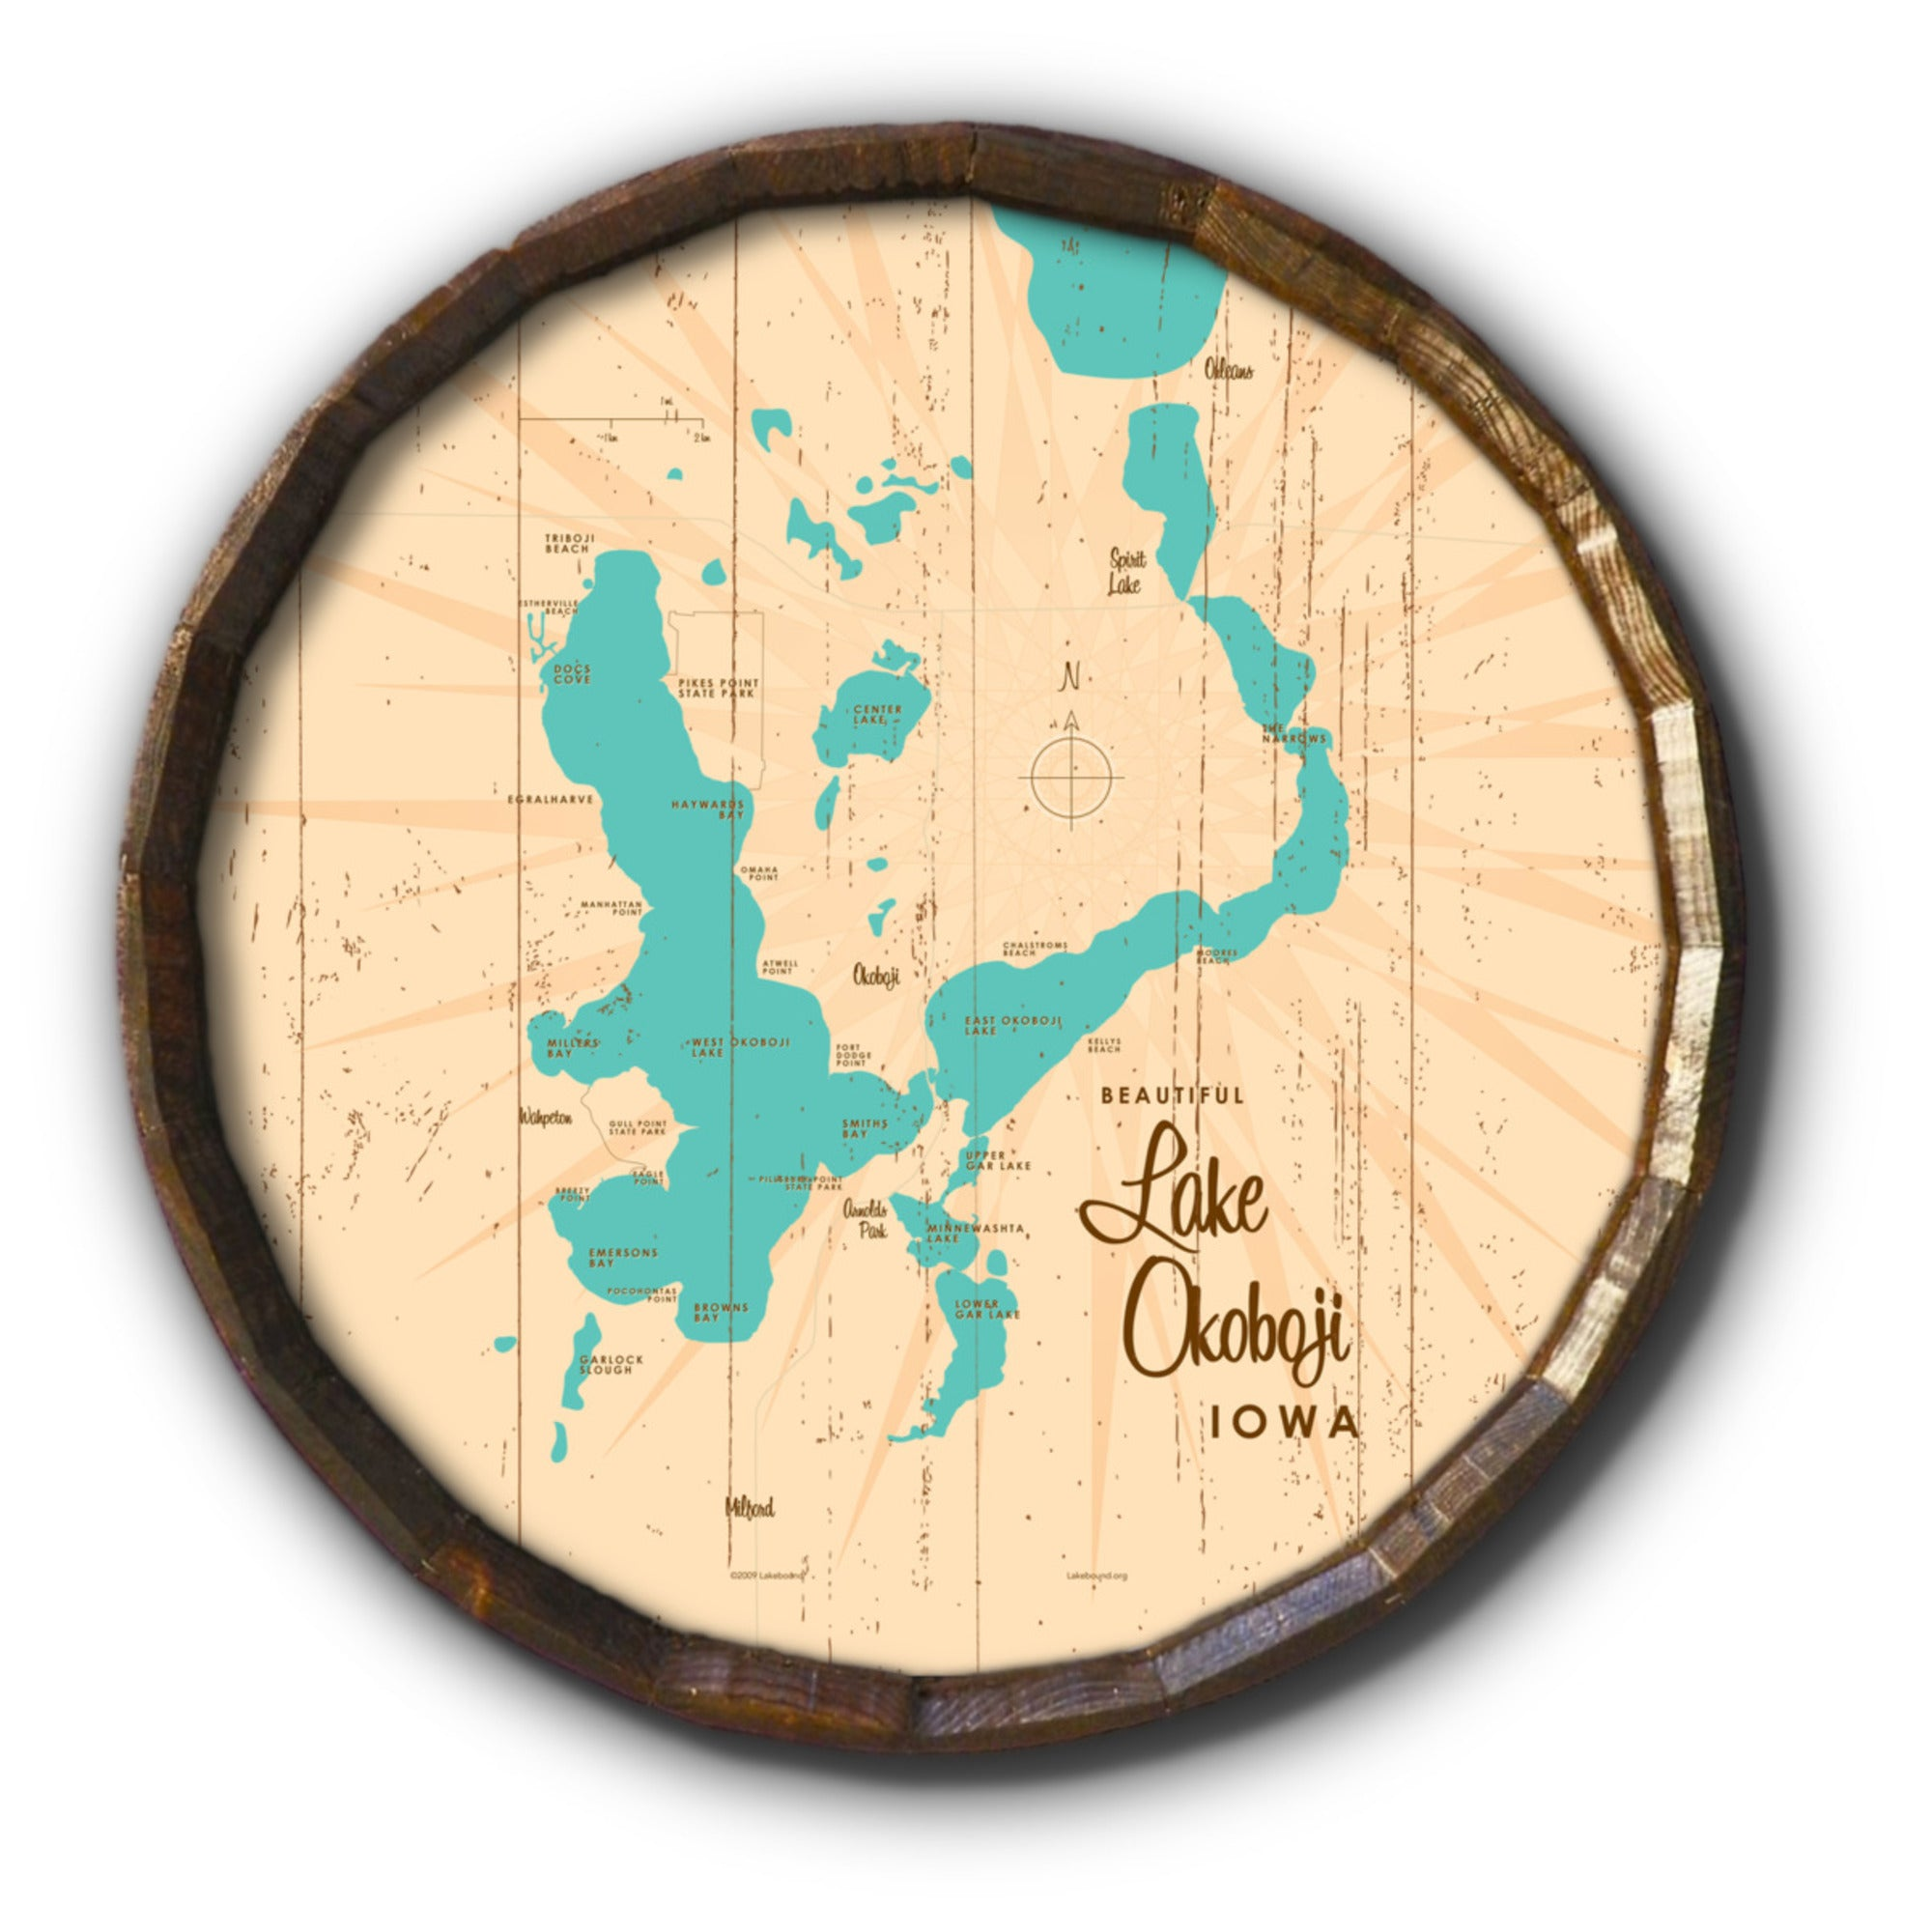 Lake Okoboji Iowa, Rustic Barrel End Map Art